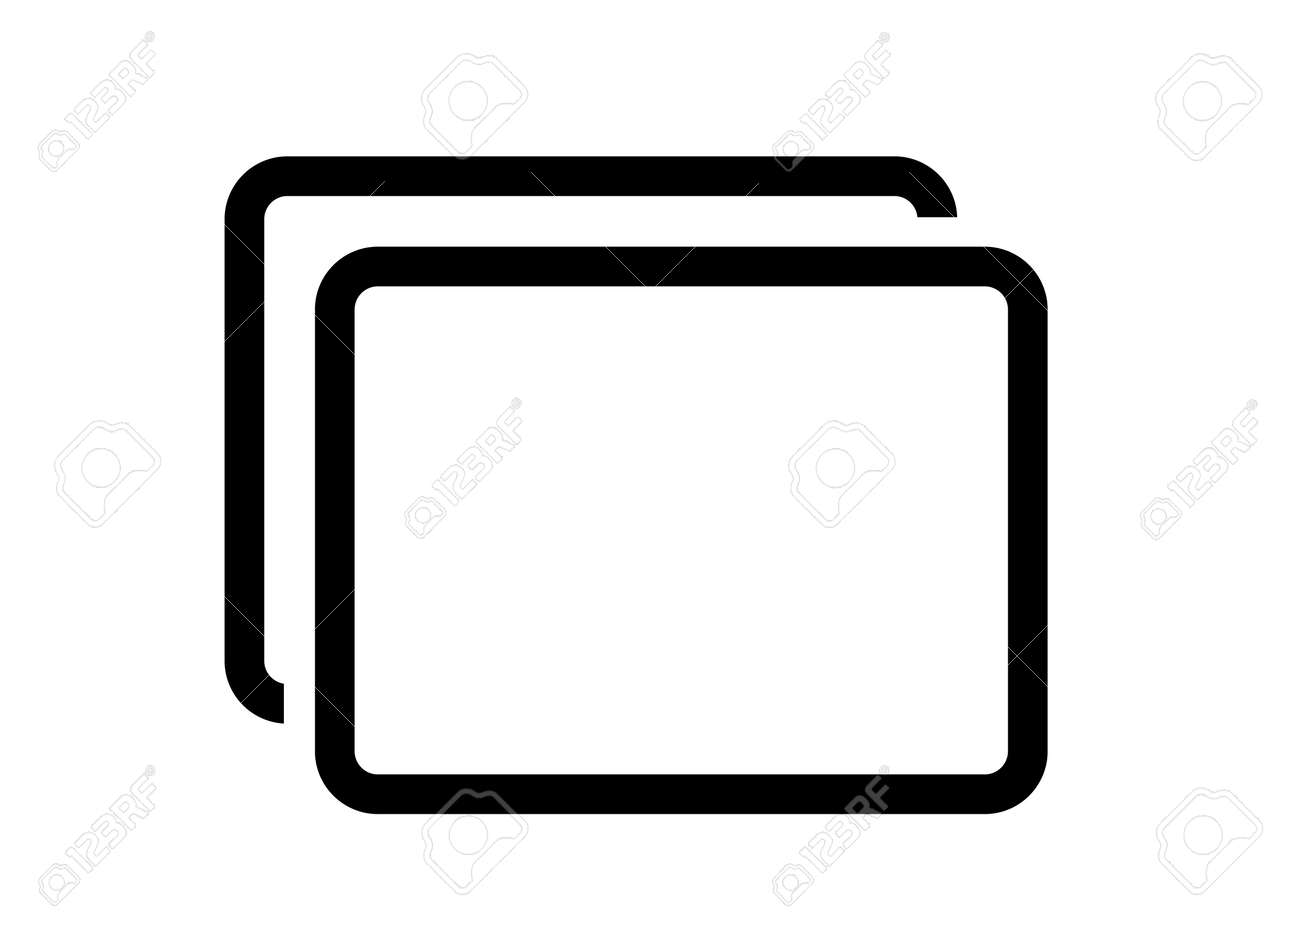 Screen and image vector icon - 170366970